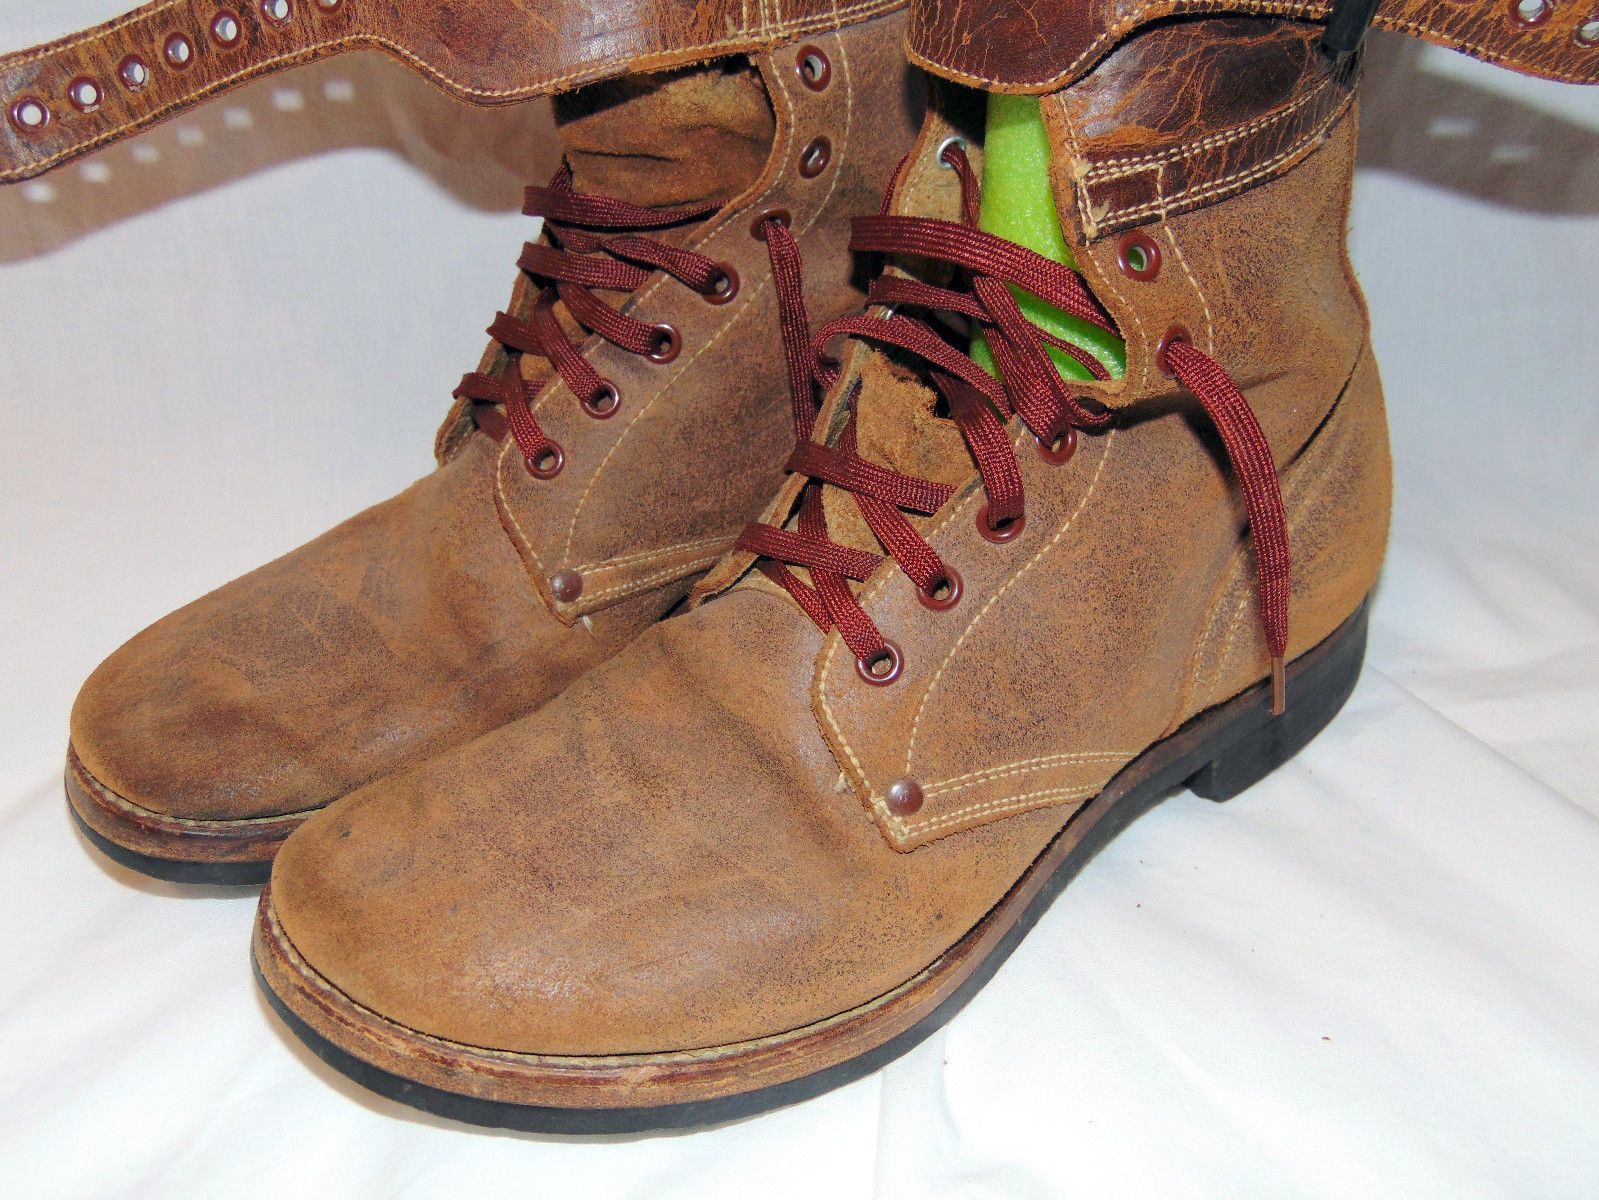 Paratrooper / Jump Boots. Man Size 8C. Military WWII Double Buckle. Brown leather featuring the double buckle shaft closure which provides great ankle support. The boots have very good soles and and overall are very clean. | eBay!